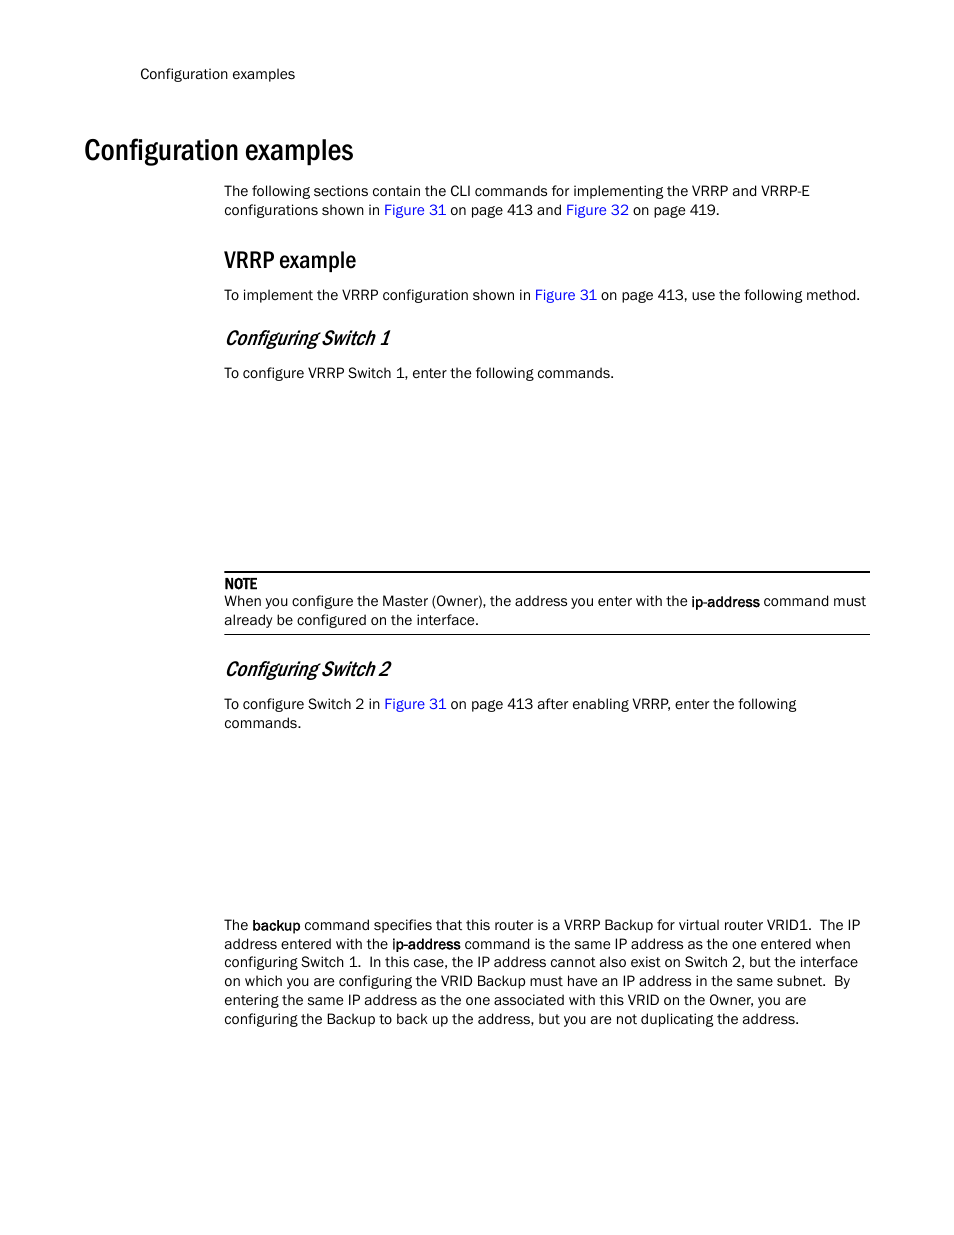 Configuration examples, Vrrp example, Configuring switch 1 | Brocade